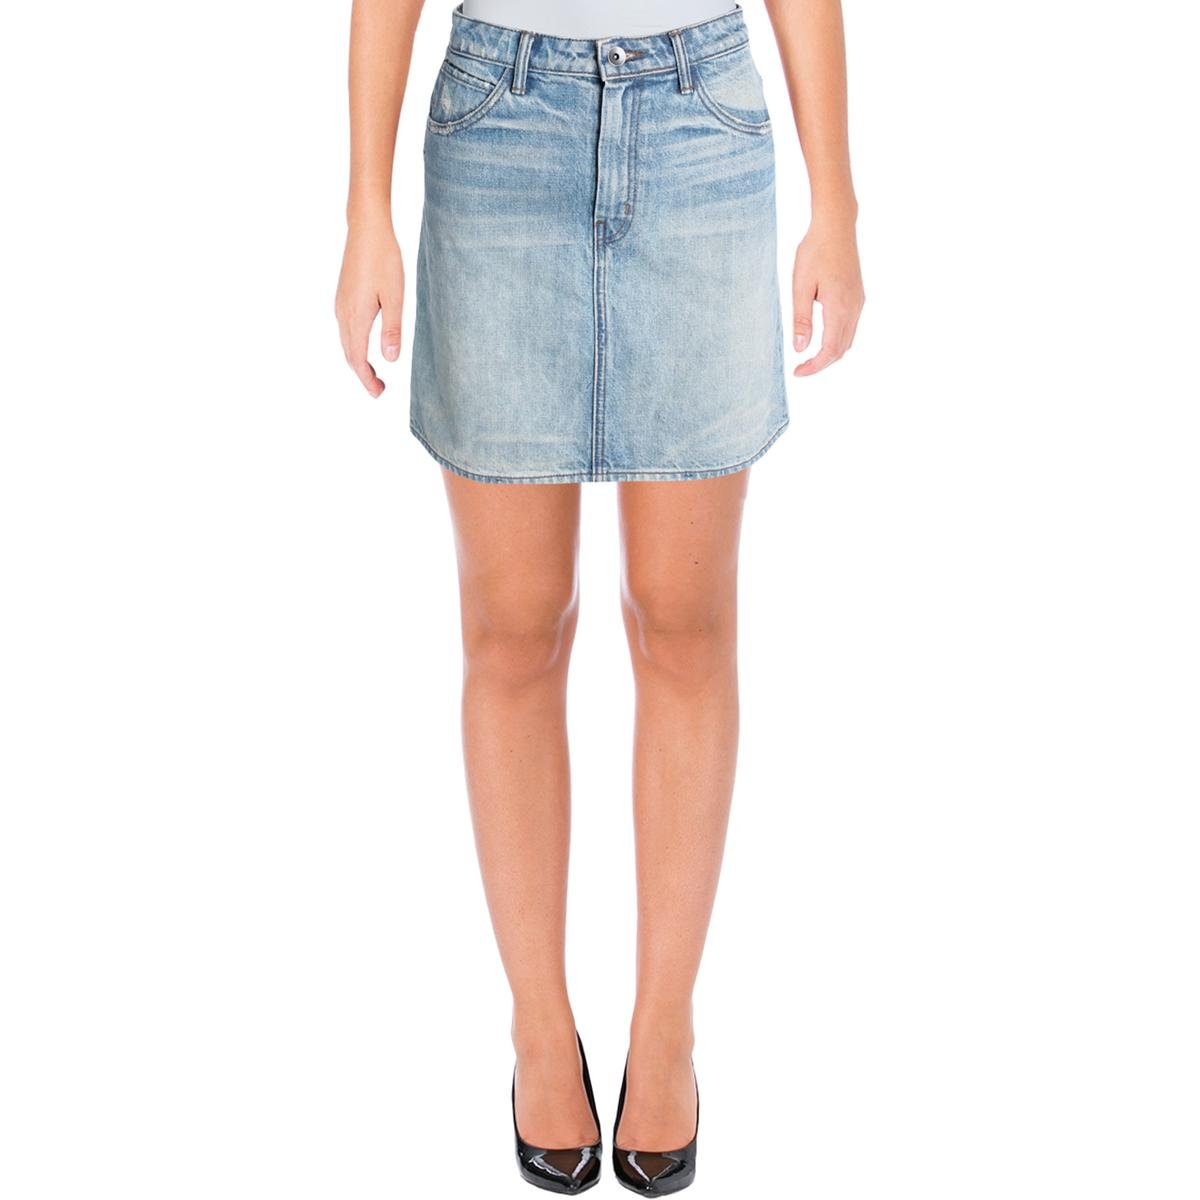 Helmut Lang Womens Faded Mini Denim Skirt Denim 26